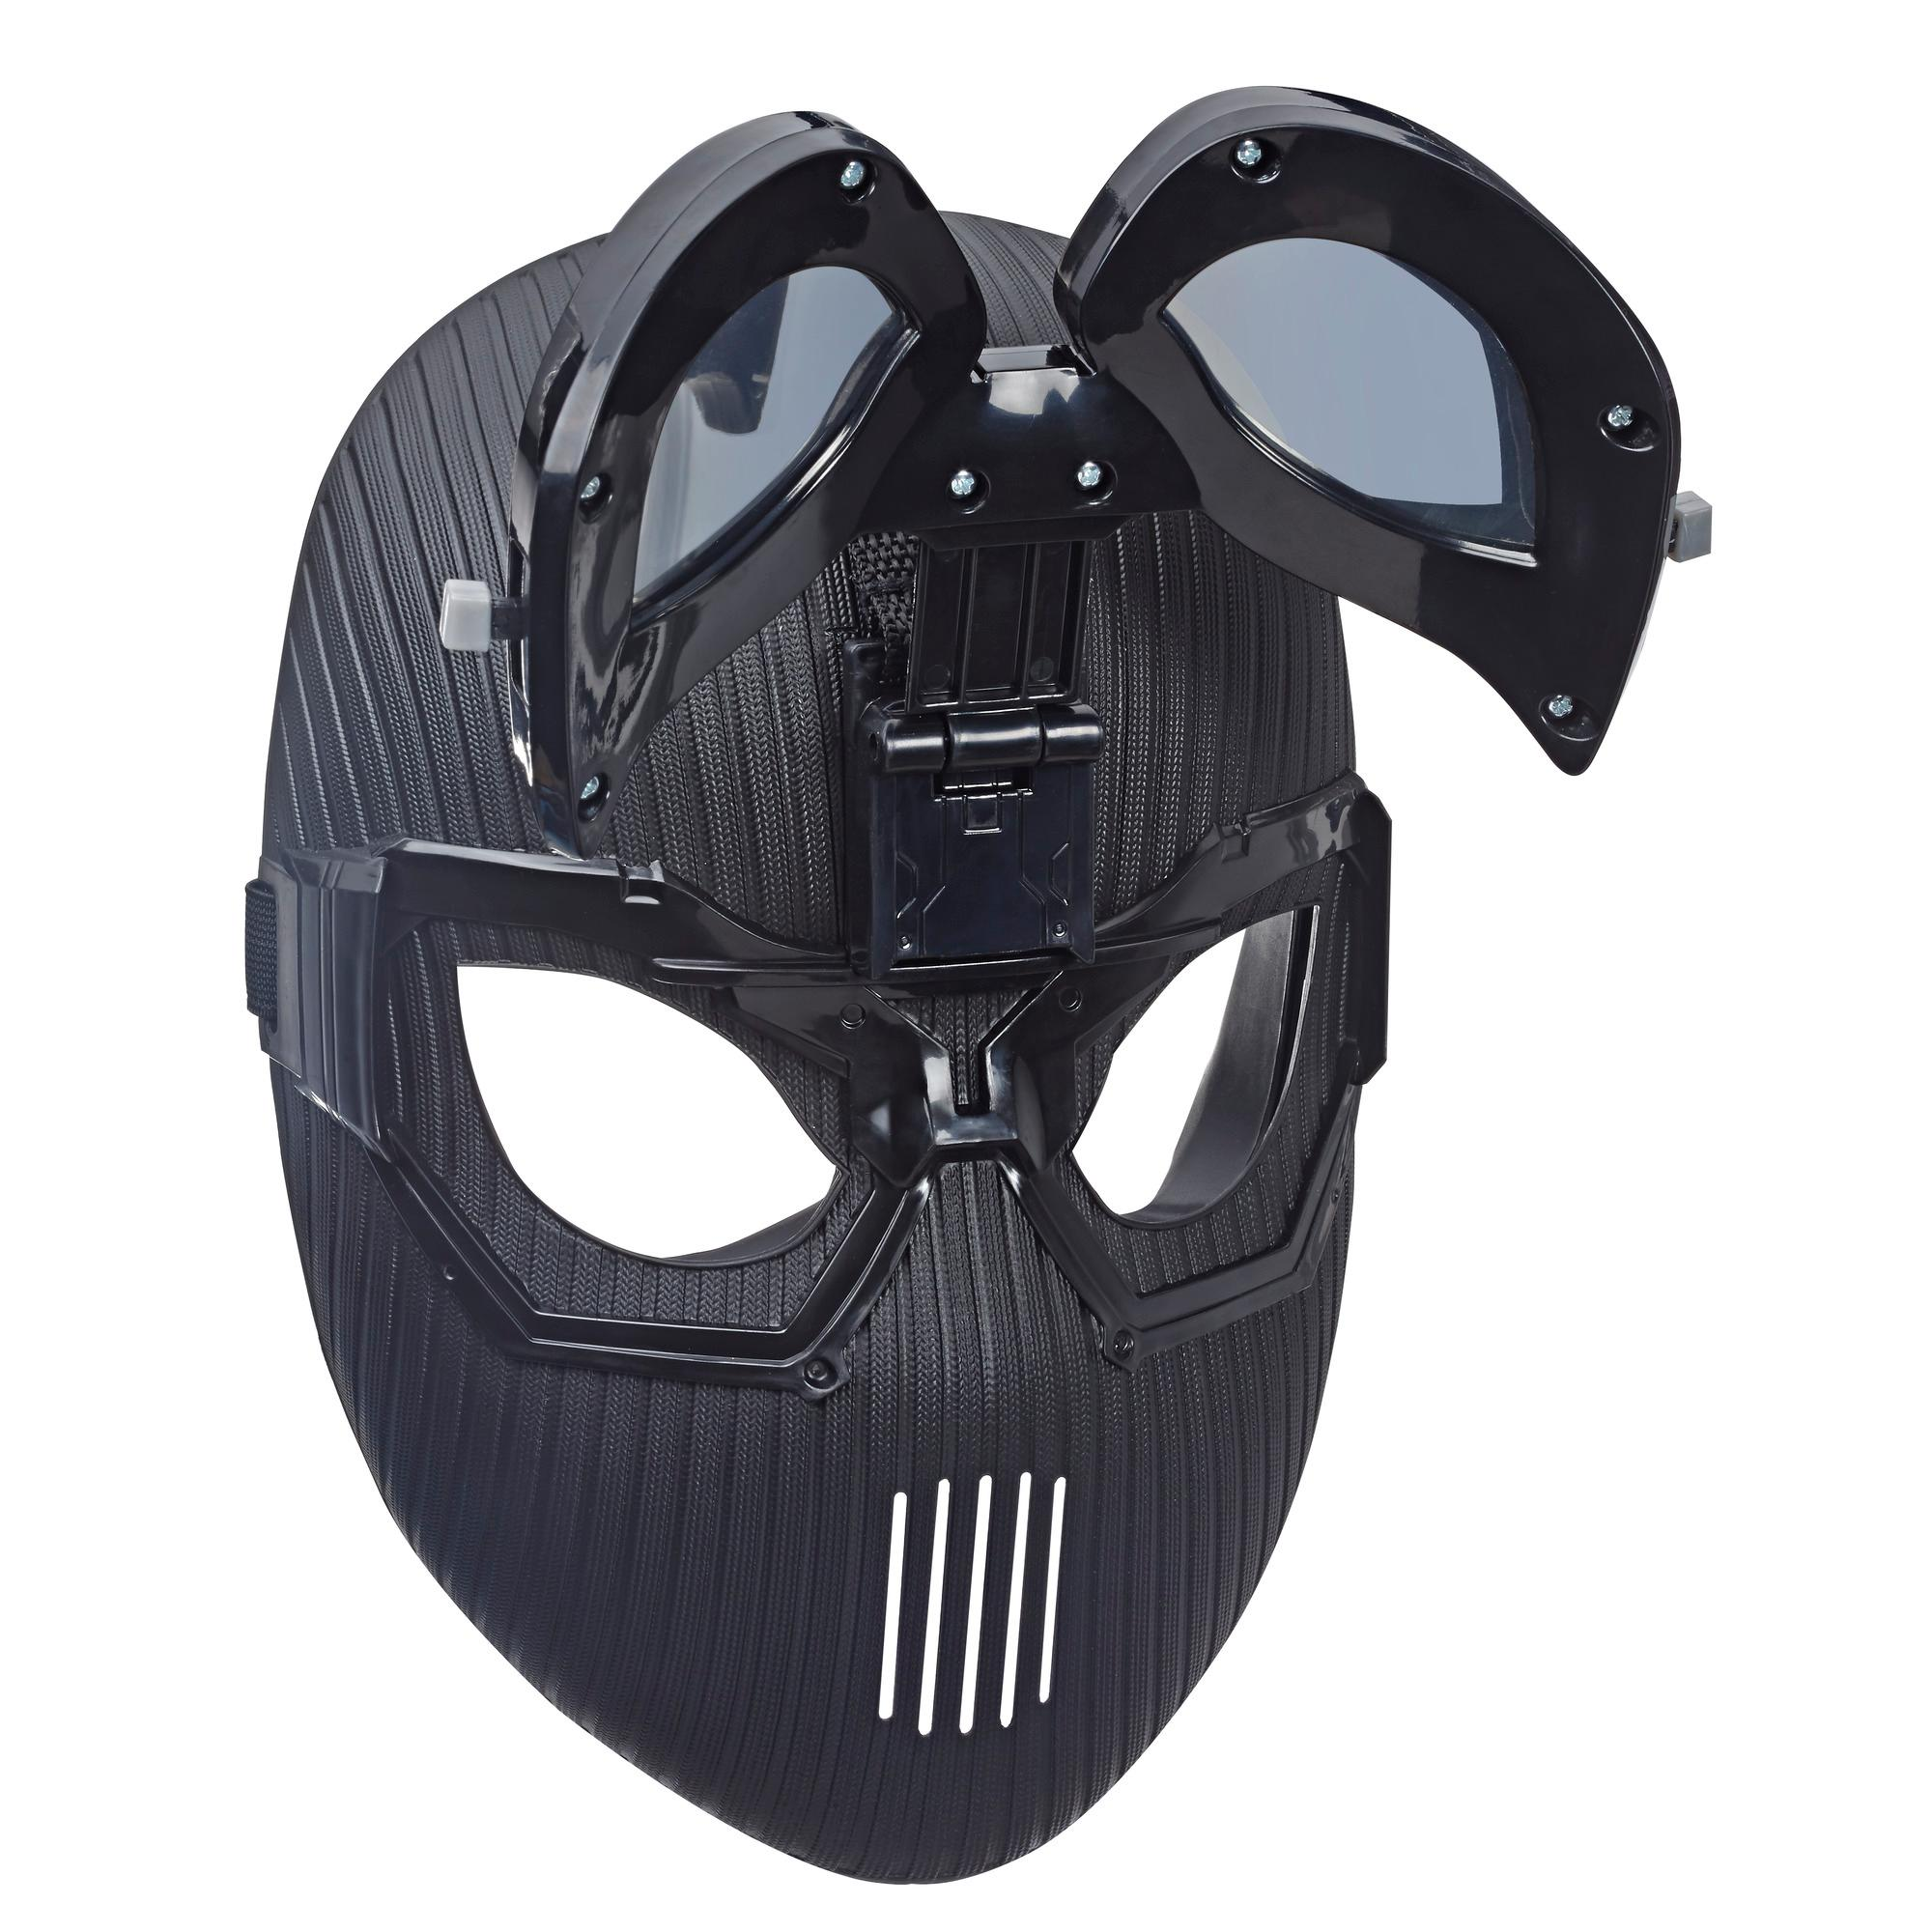 Marvel Spider-Man: Far From Home Spider-Man Stealth Suit Mask for Spider-Man Roleplay – Super Hero Mask Toy